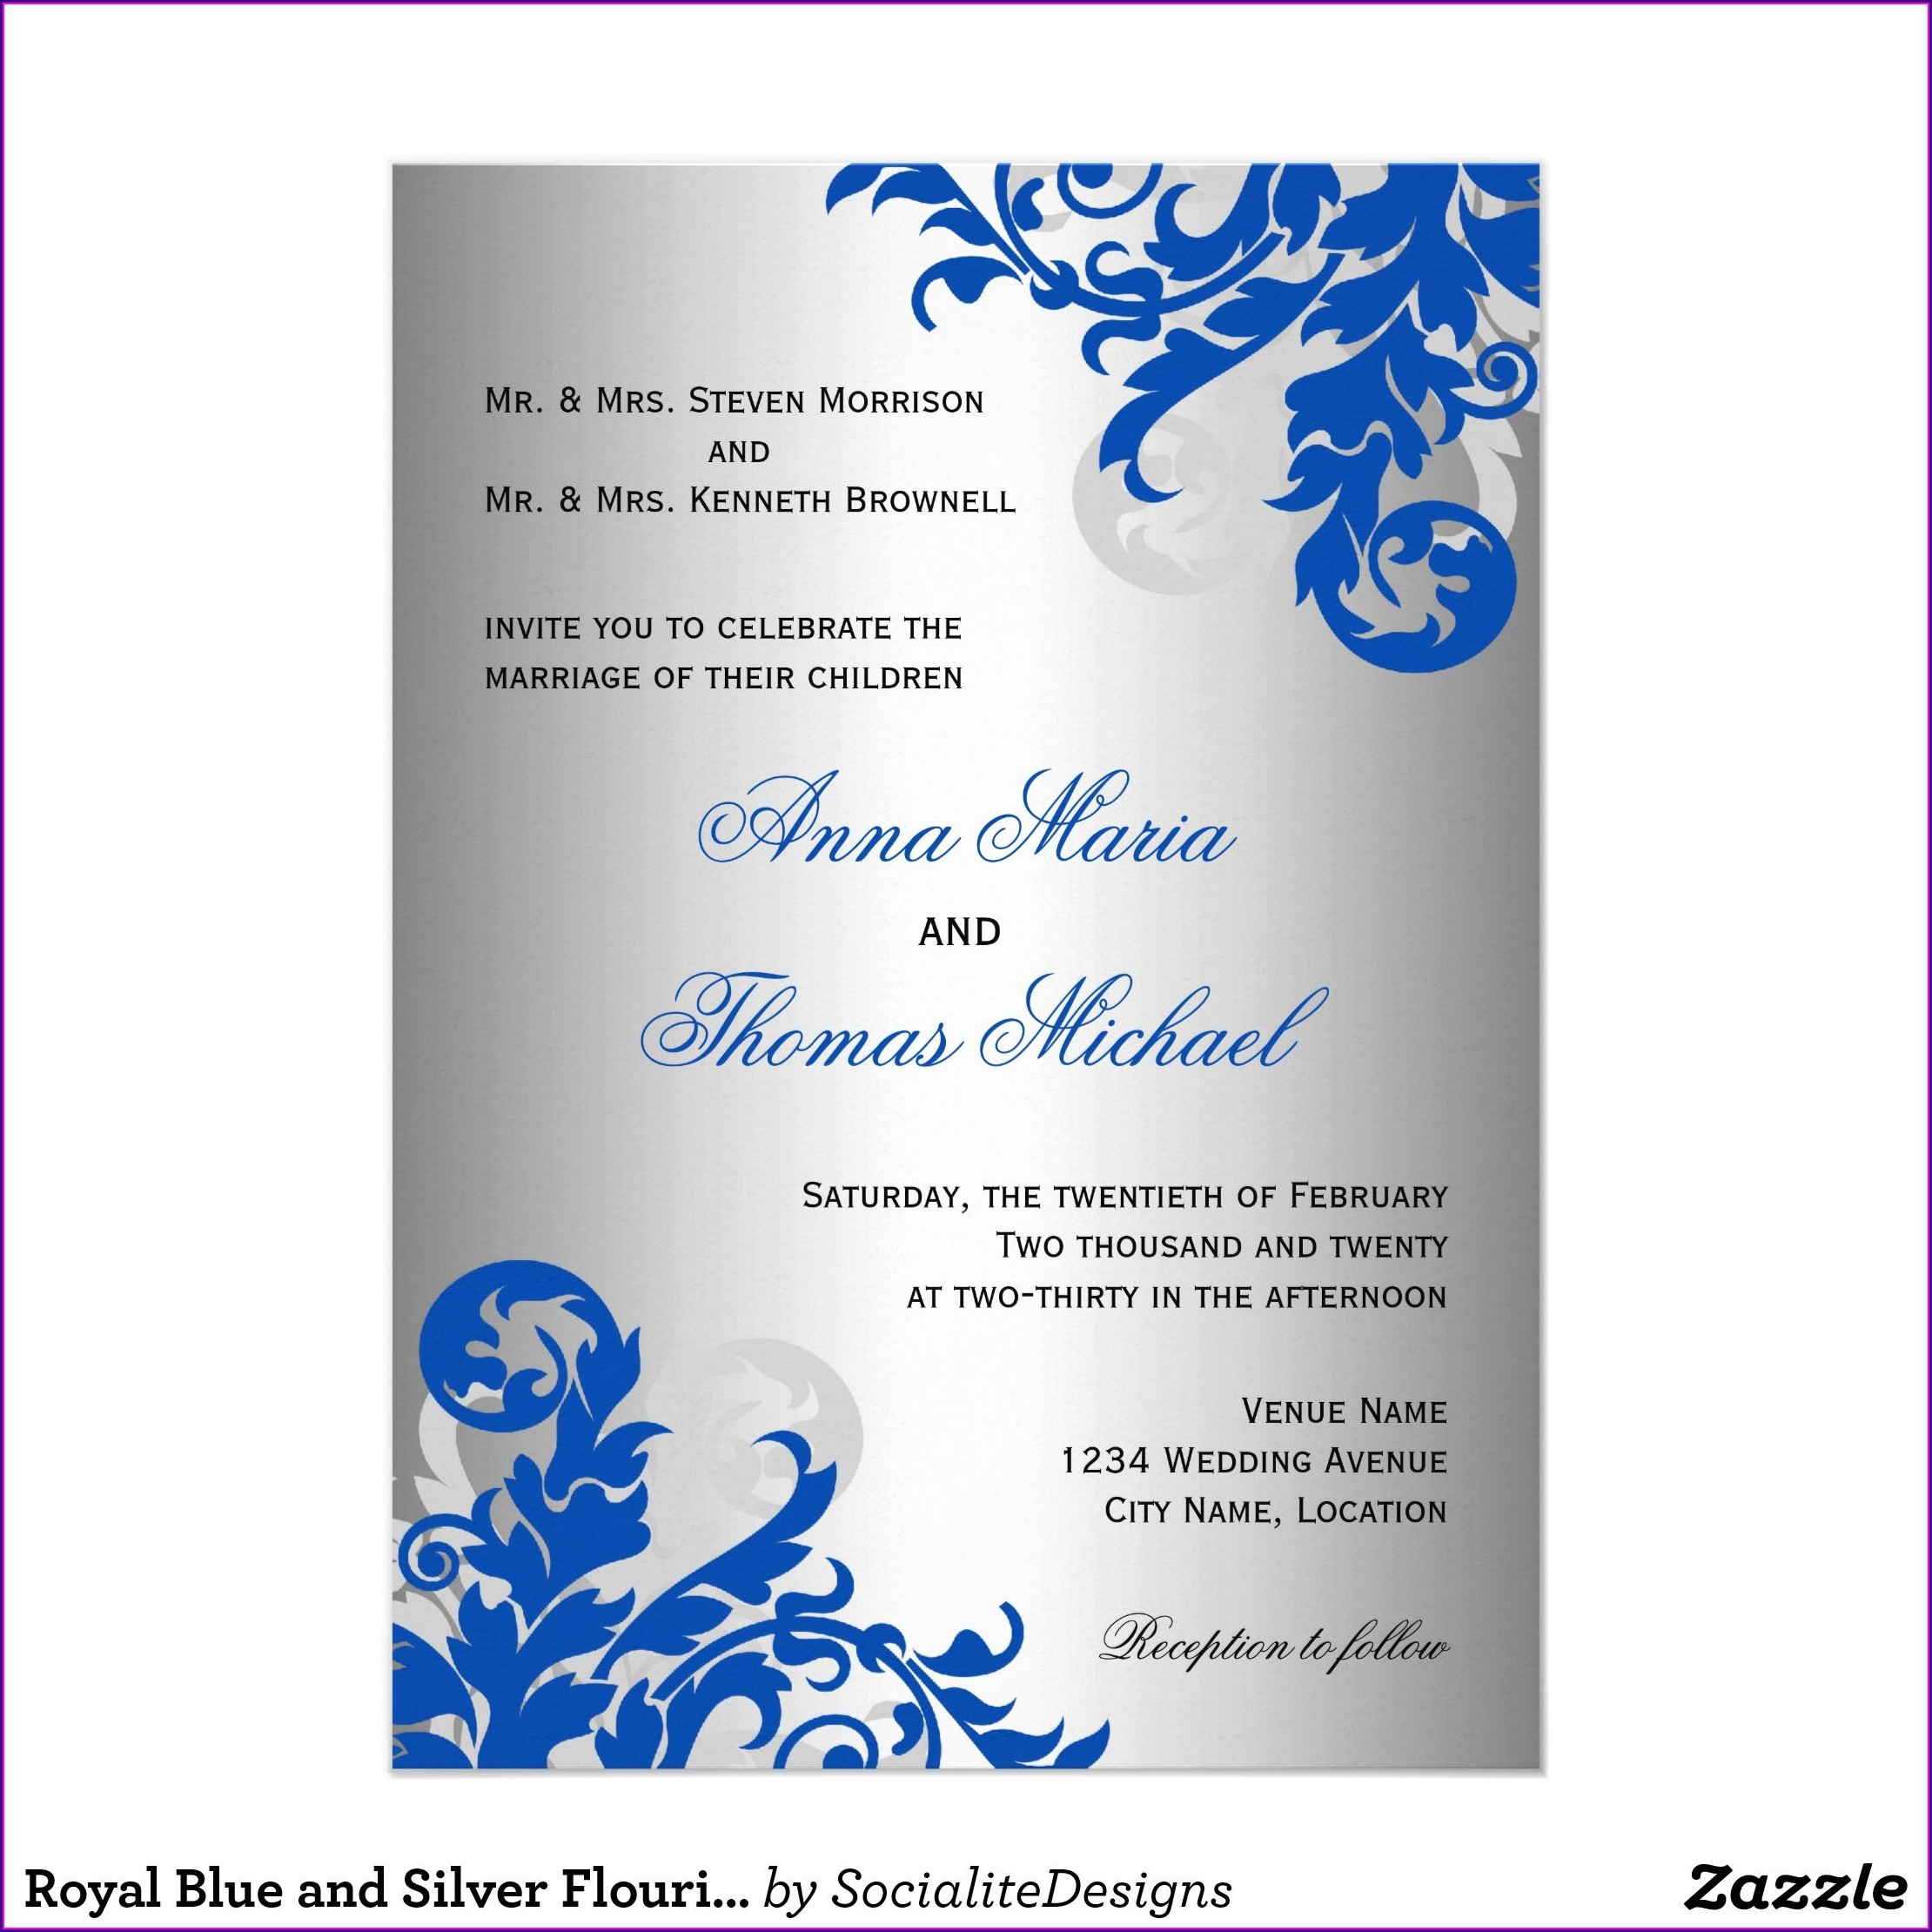 Blank Royal Blue Wedding Invitation Background Hd